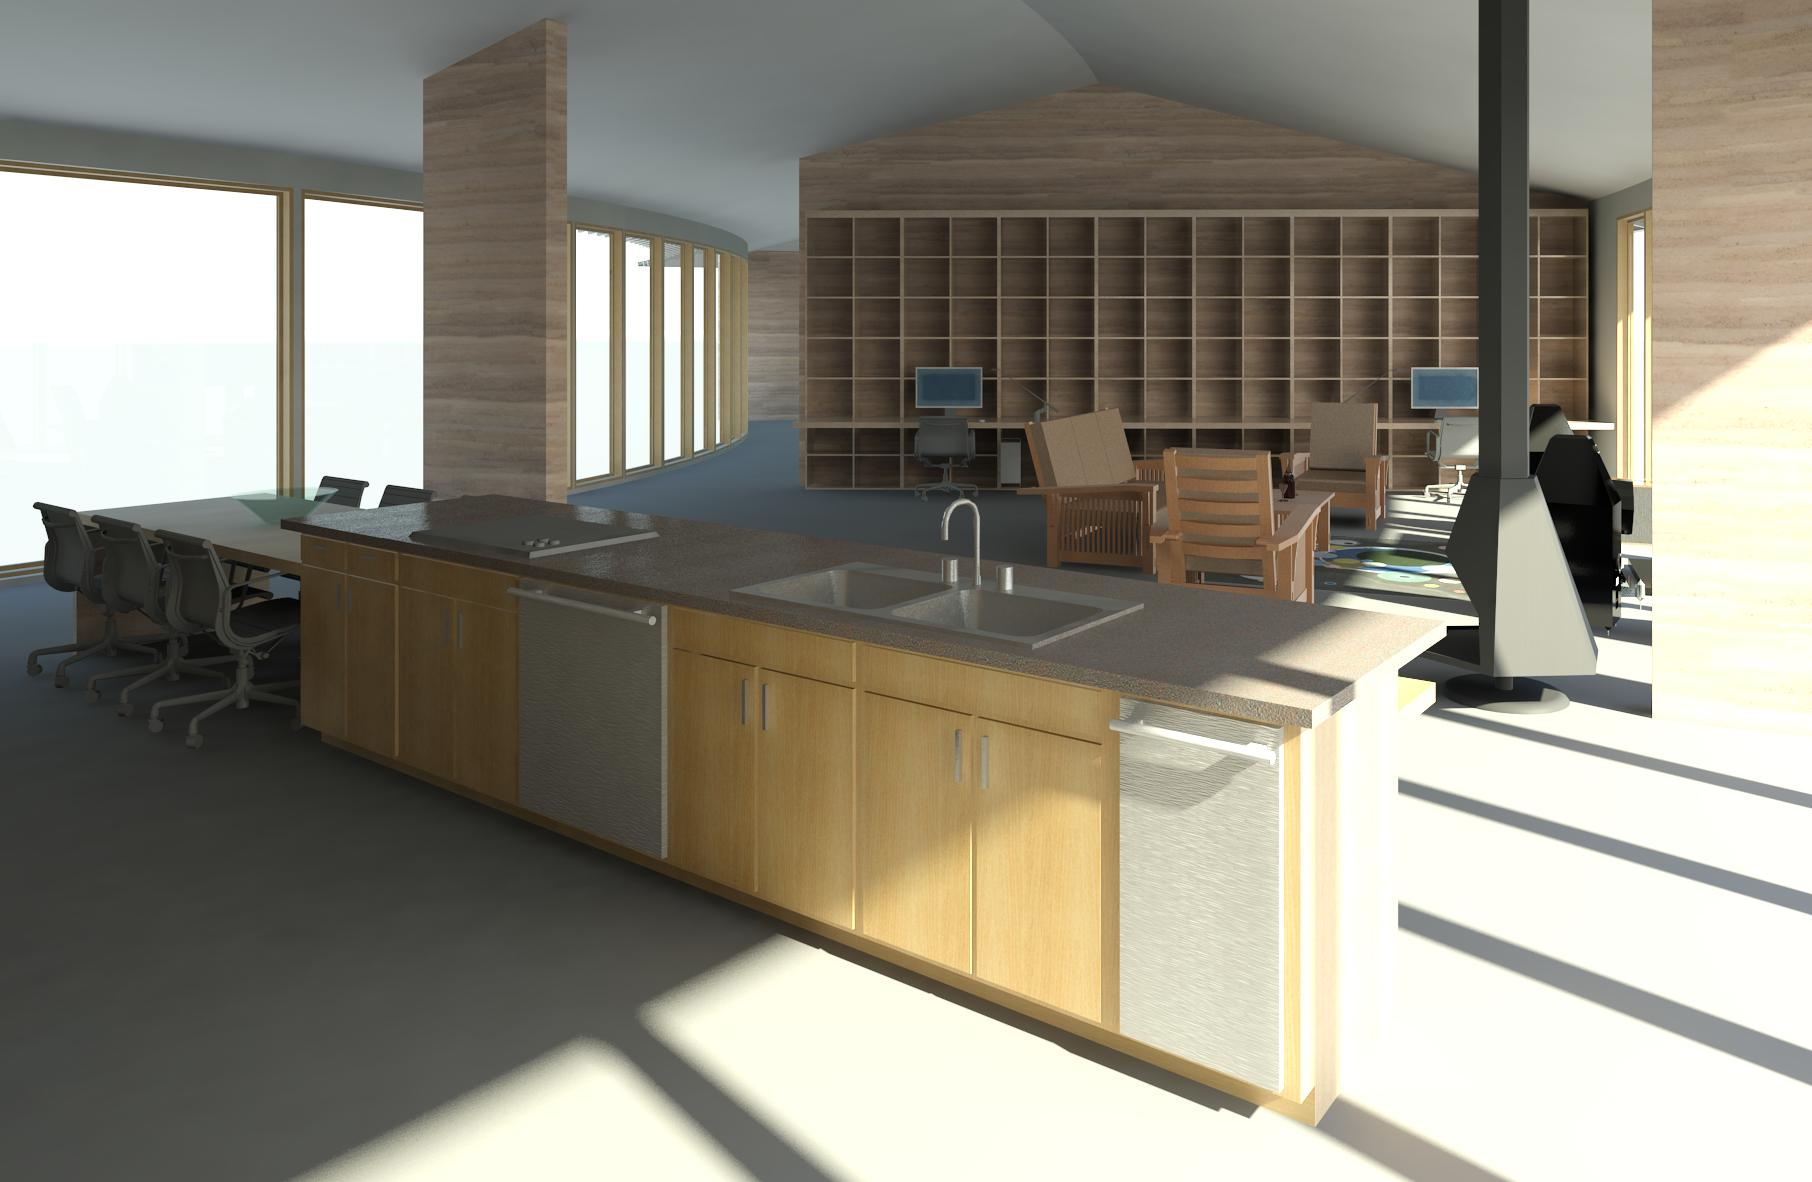 Arc ii project renderings ashelford consulting for Kitchen set revit